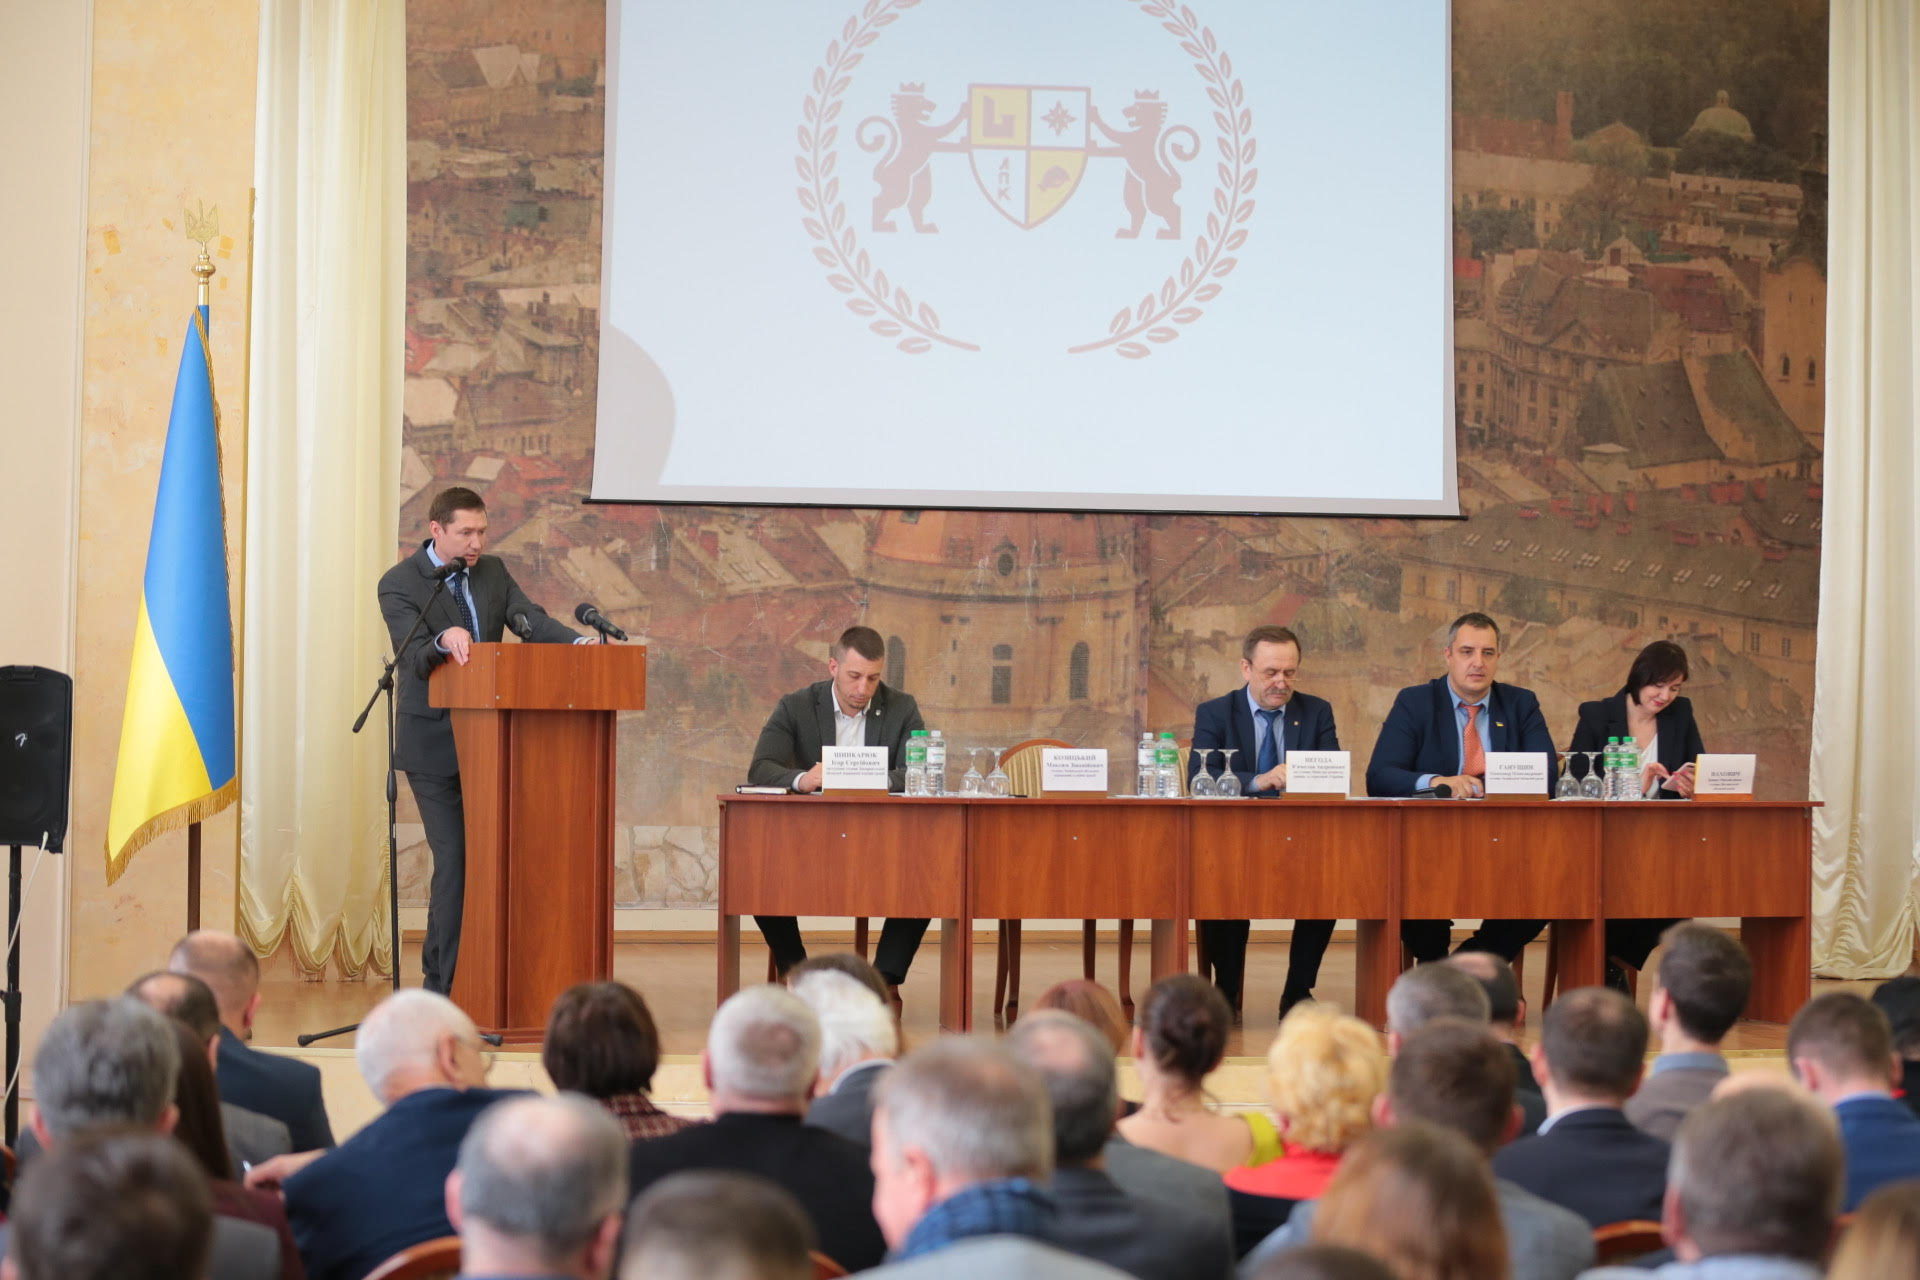 For nobody to be tempted to manipulate the local government: discussing Constitutional amendments in Lviv